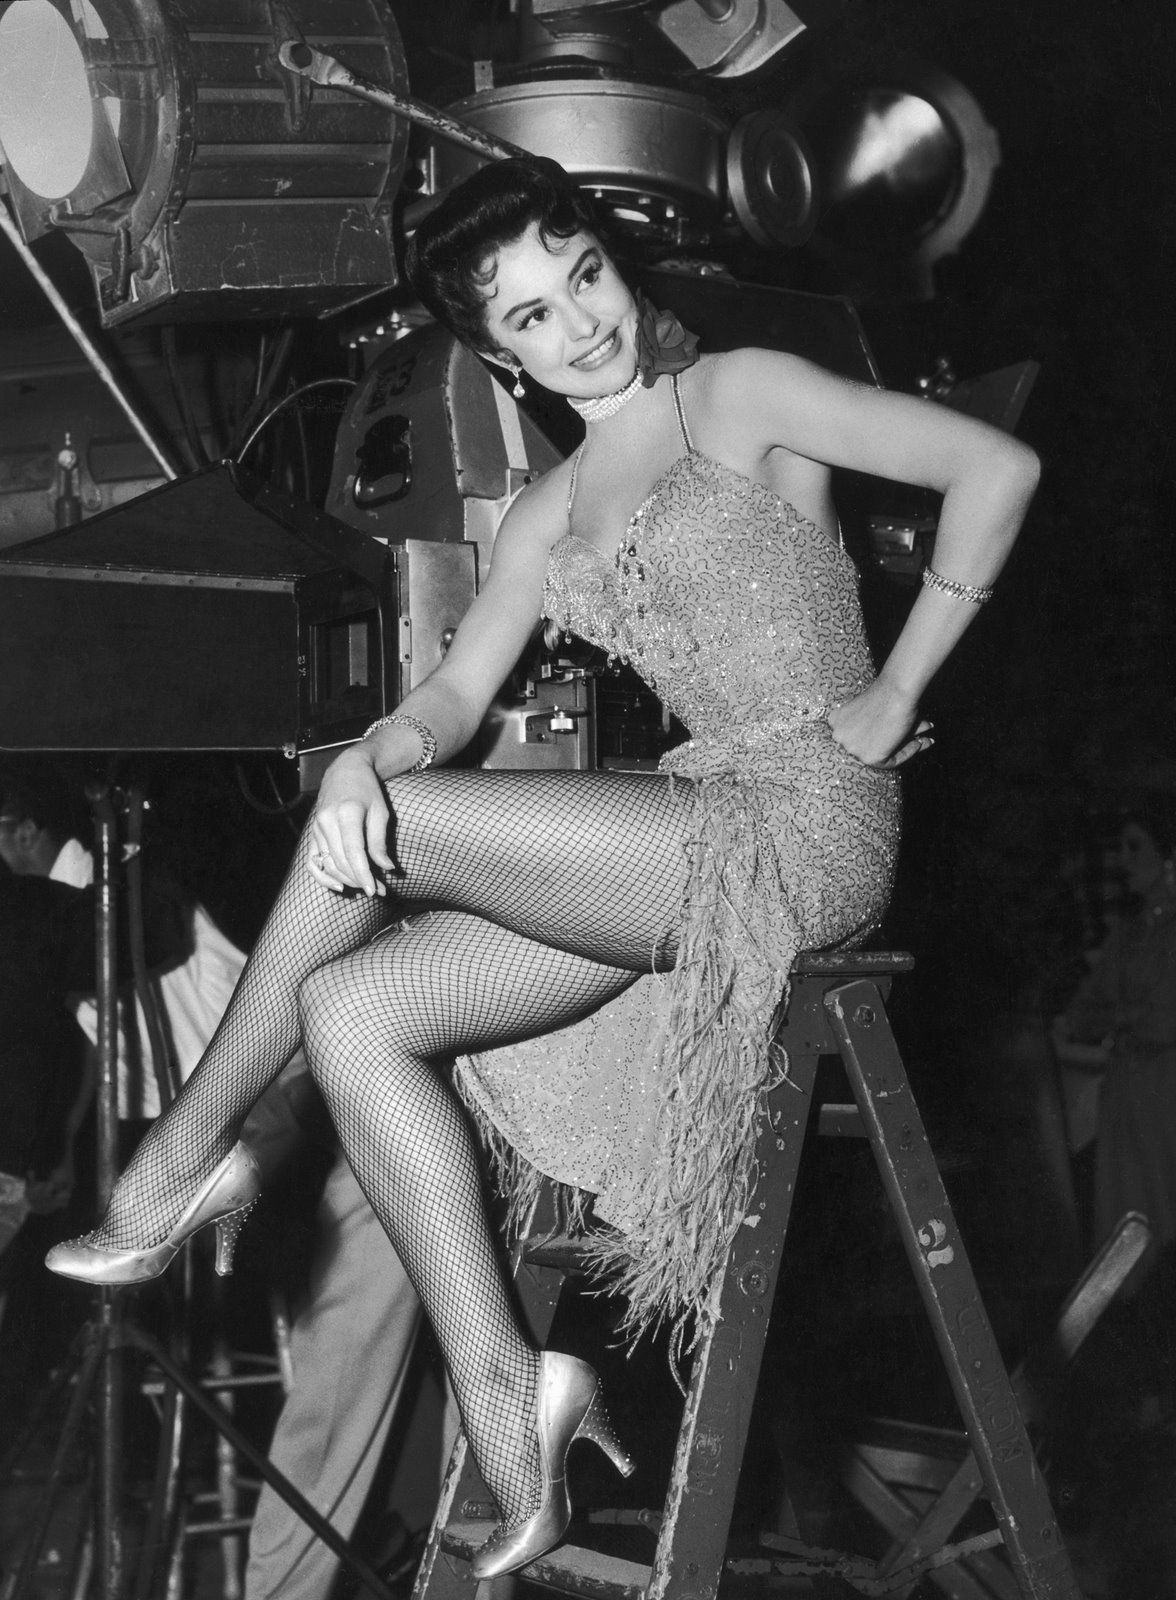 cyd charisse birthdaycyd charisse height, cyd charisse height weight, cyd charisse now, cyd charisse and fred astaire, cyd charisse gene kelly, cyd charisse ballerina, cyd charisse funeral, cyd charisse las vegas, cyd charisse films, cyd charisse photos, cyd charisse old, cyd charisse birthday, cyd charisse dancing